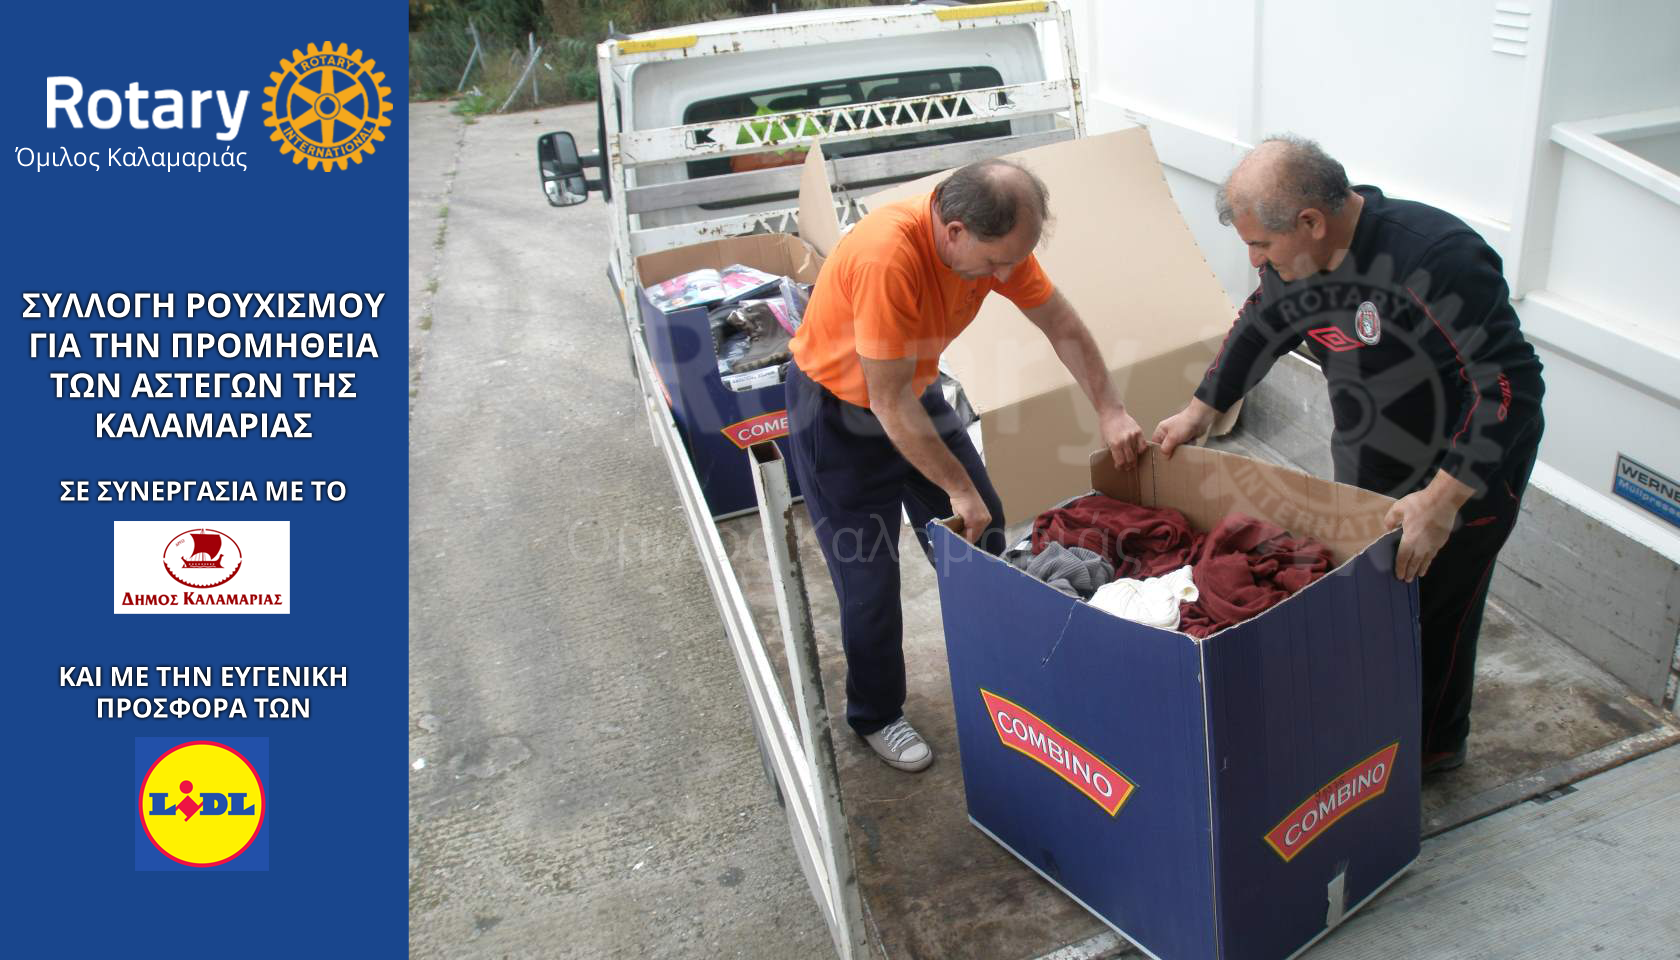 Rotary-Club-Kalamaria-and-Lidl-give-clothes-for-homeles-001